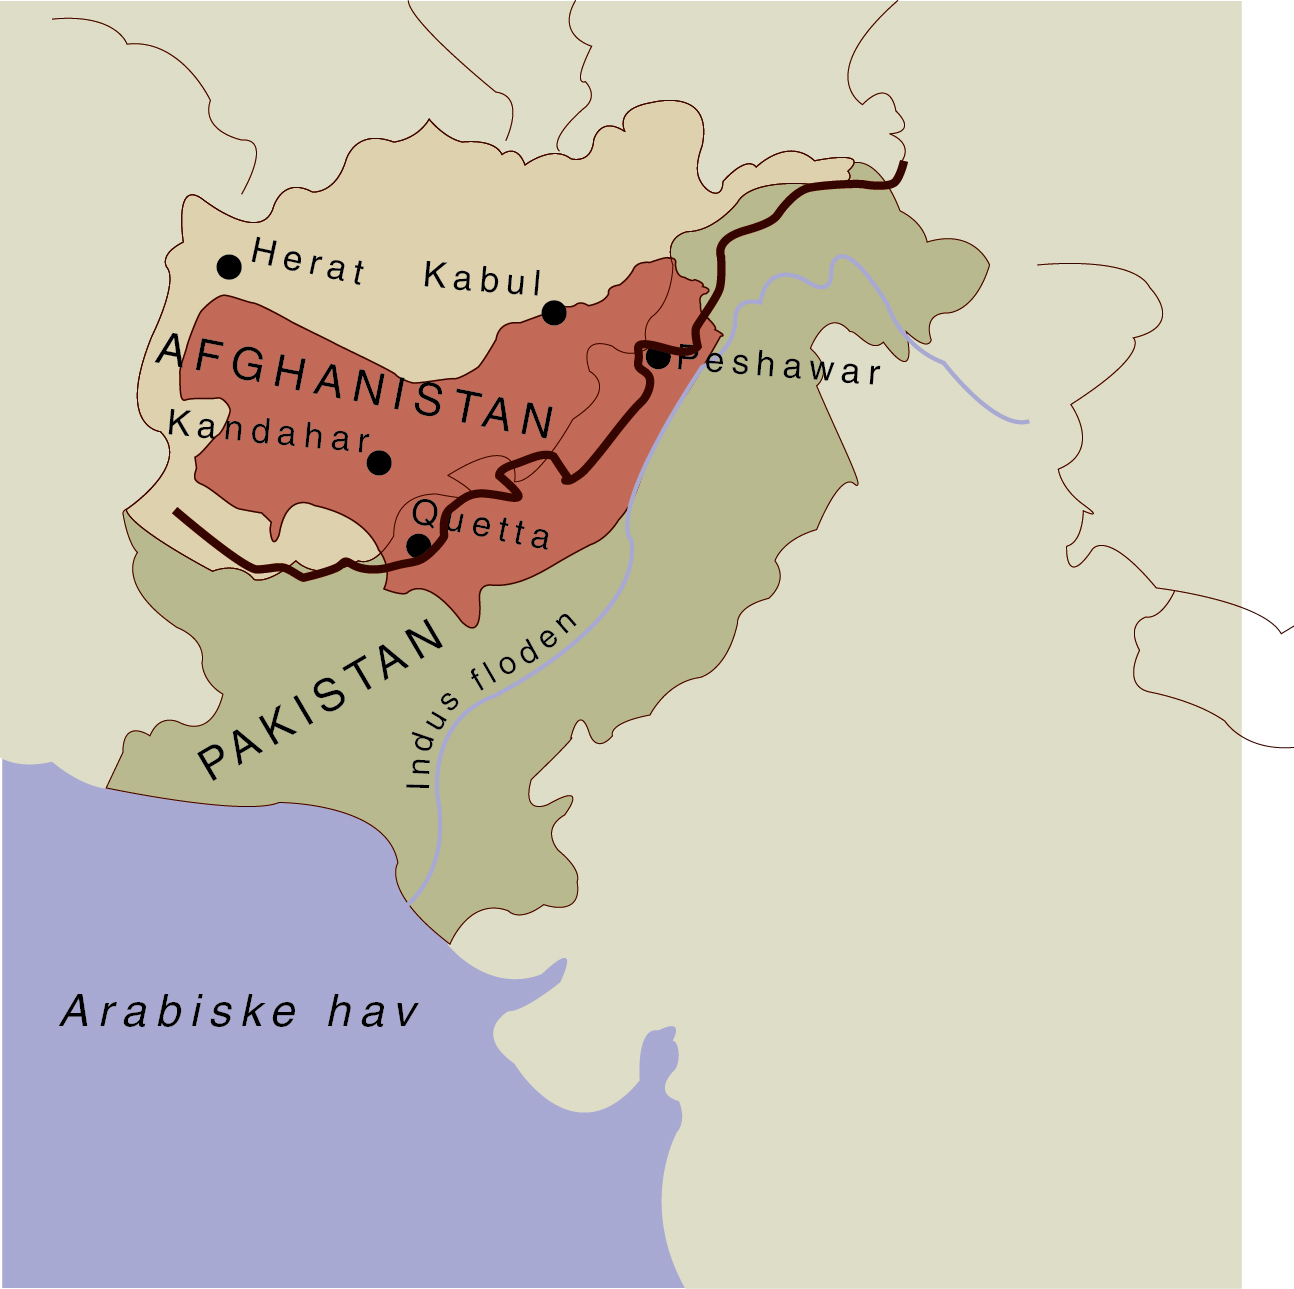 The border between Pakistan and Afghanistan cuts right across the Pashtun tribal area (shown in red). The antago­nism between Pakistan and Afghanistan has repeatedly led Pakistan to close their shared border. Map by Moesgaard Museum